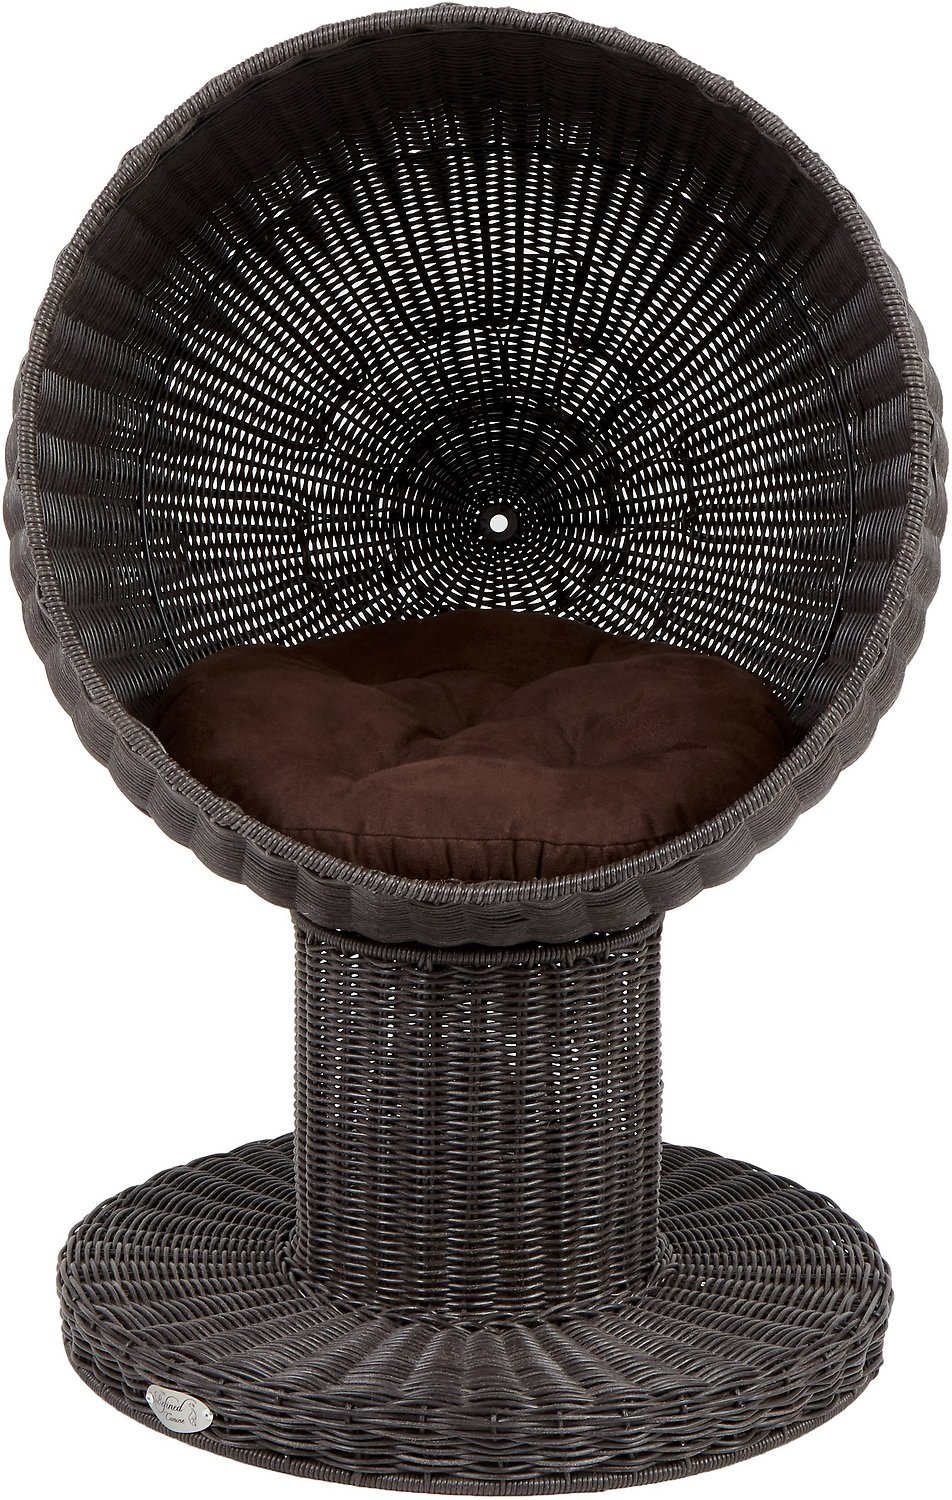 Cat Furniture For Sale The Refined Feline Kitty Ball Cat Bed Espresso Chewy